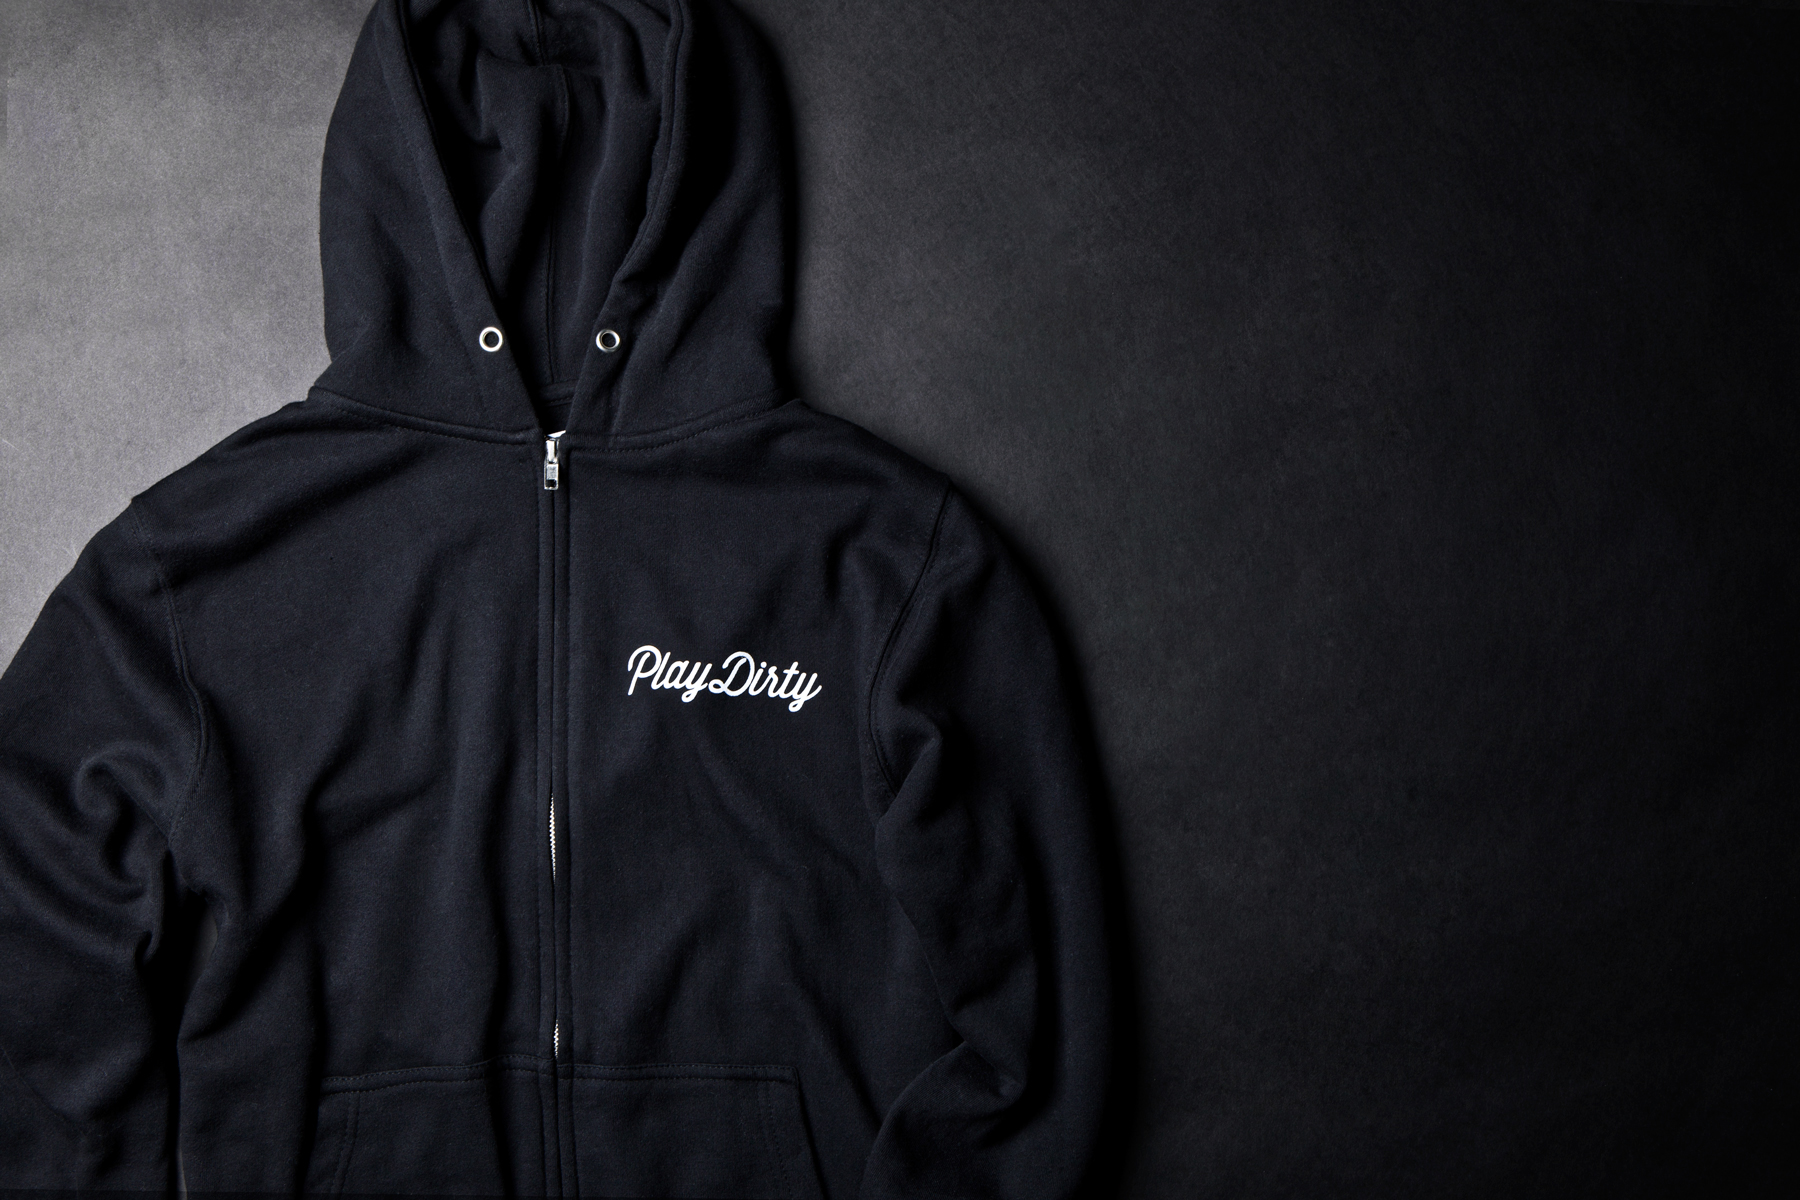 undefeated 2013 play dirty collection